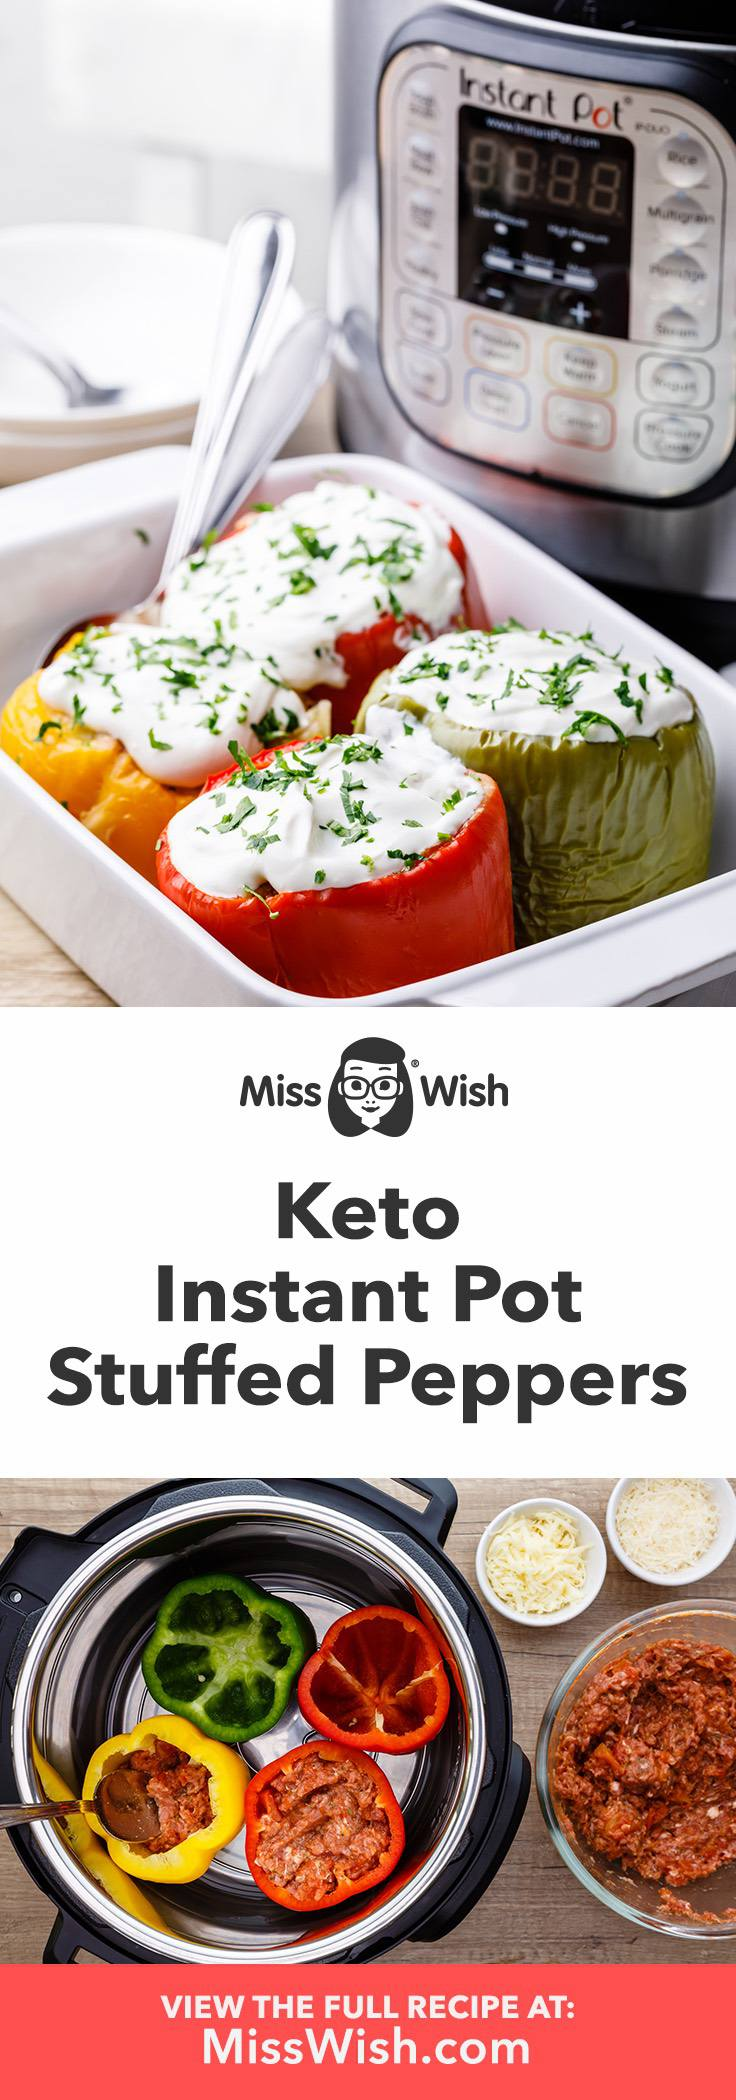 Keto Instant Pot Stuffed Peppers (No Rice Recipe)